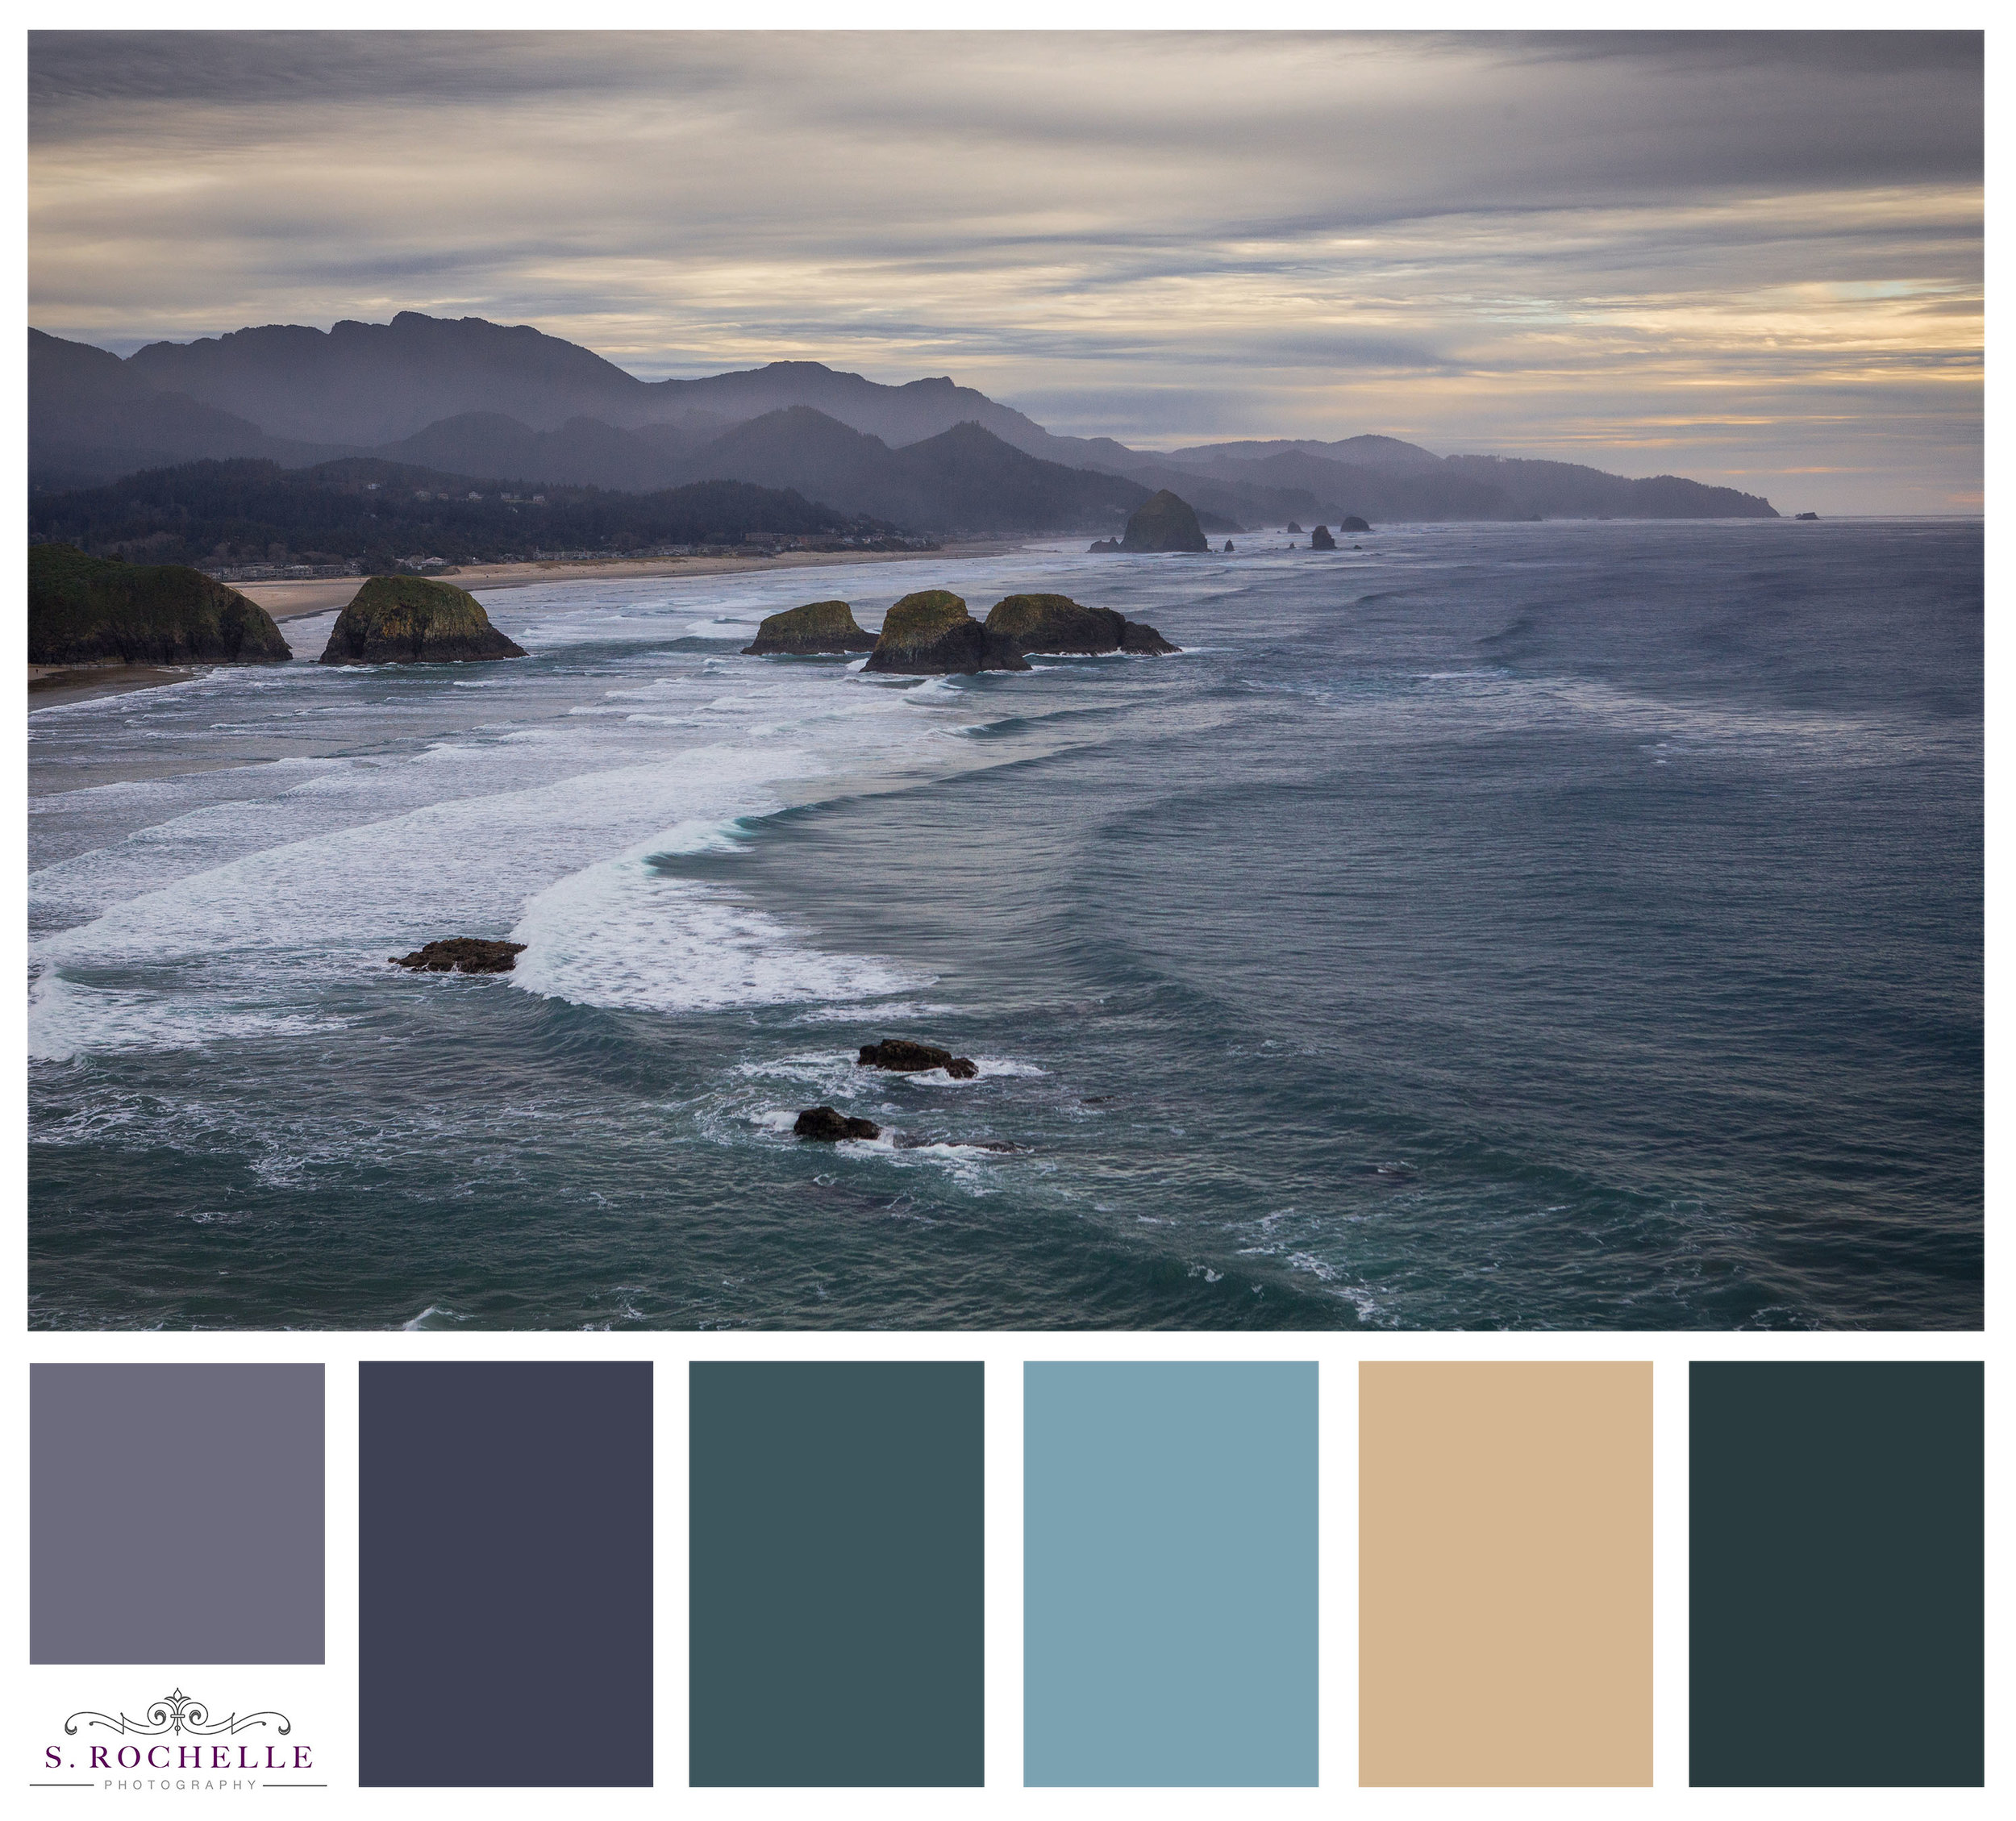 Cannon_Beach_Coast_S_Rochelle_Photography_20171226_IMG_3143_ColorPalette.jpg